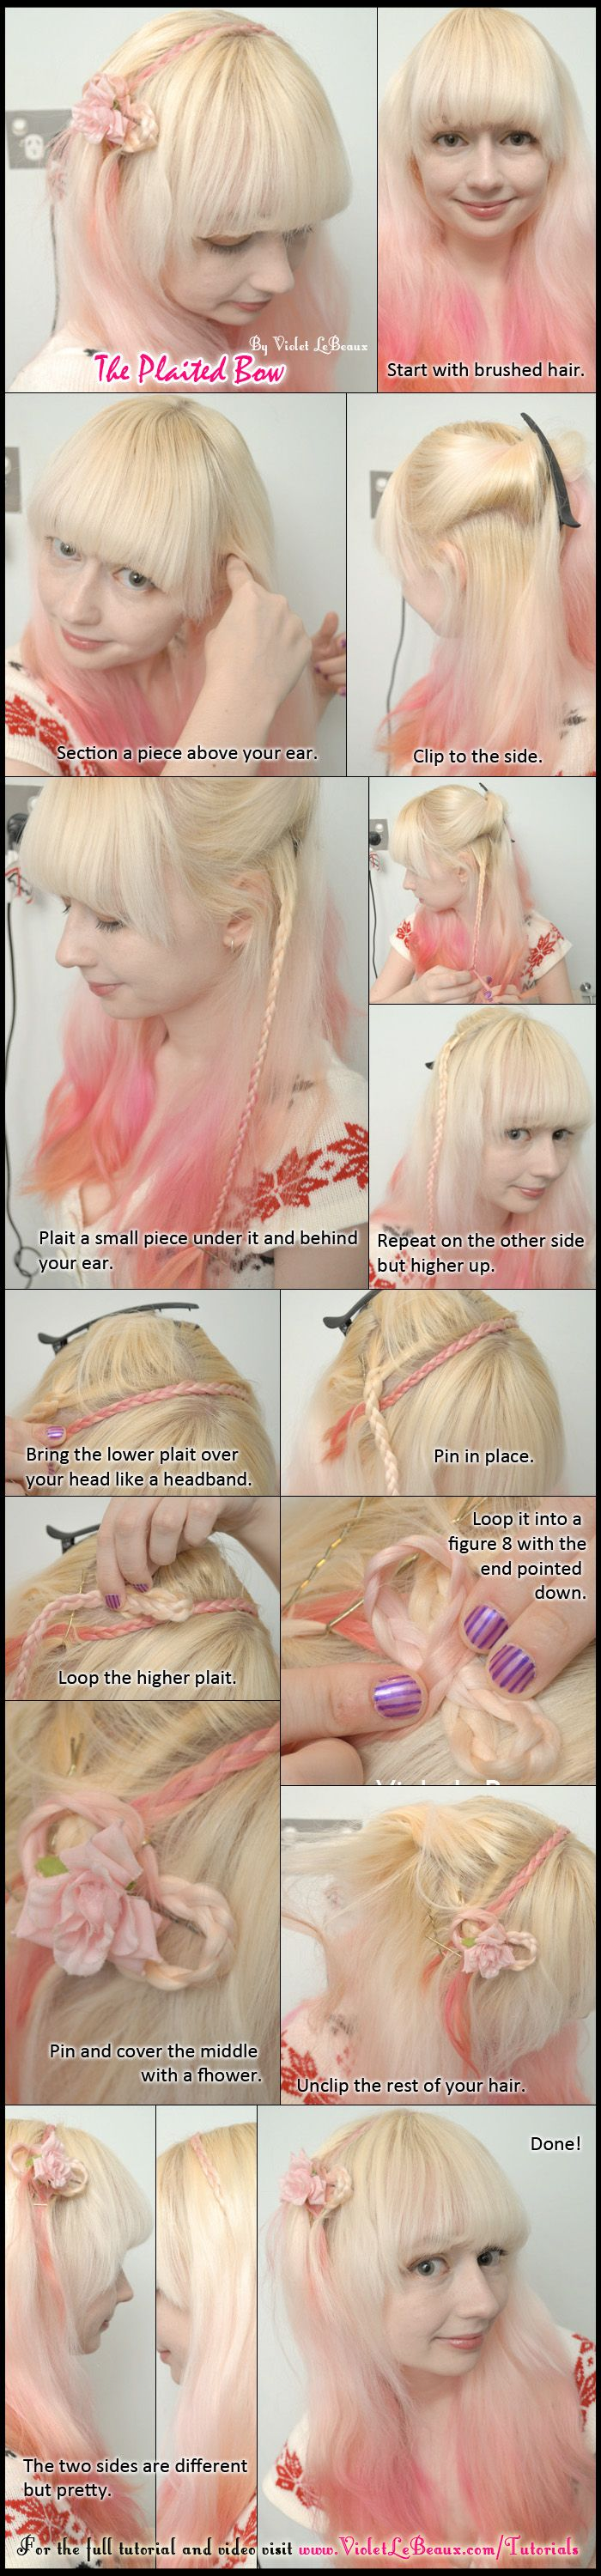 Simple tutorial with a twist on the plaited headband.   Full original tutorial over here: http://www.violetlebeaux.com/2010/12/hair-tutorial-casual-heartflower-side-plaits-_/